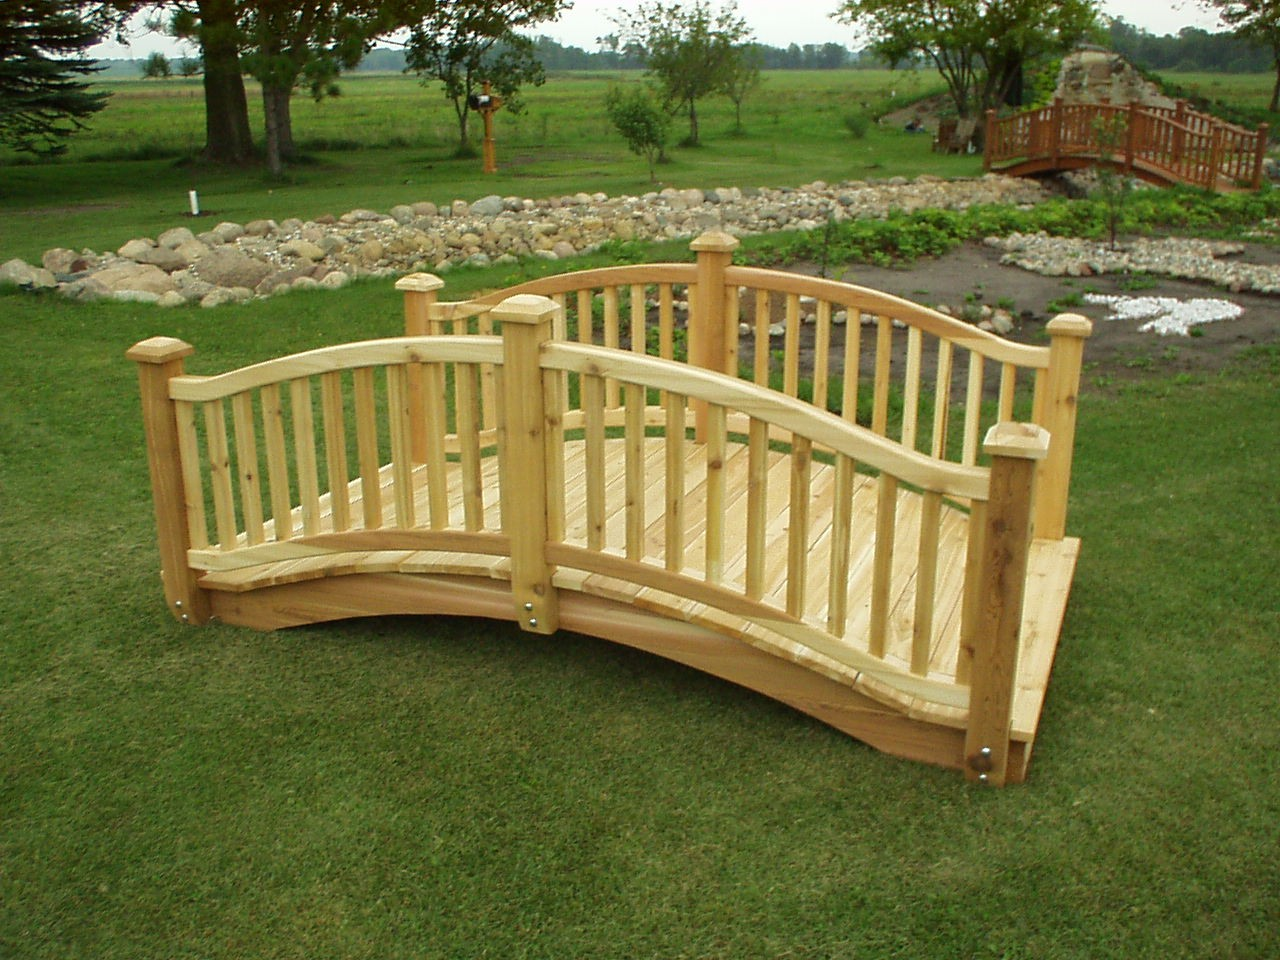 garden bridge how to build wooden bridge | cedar bridge shop. com garden bridges 4-52ft PRTJWJS